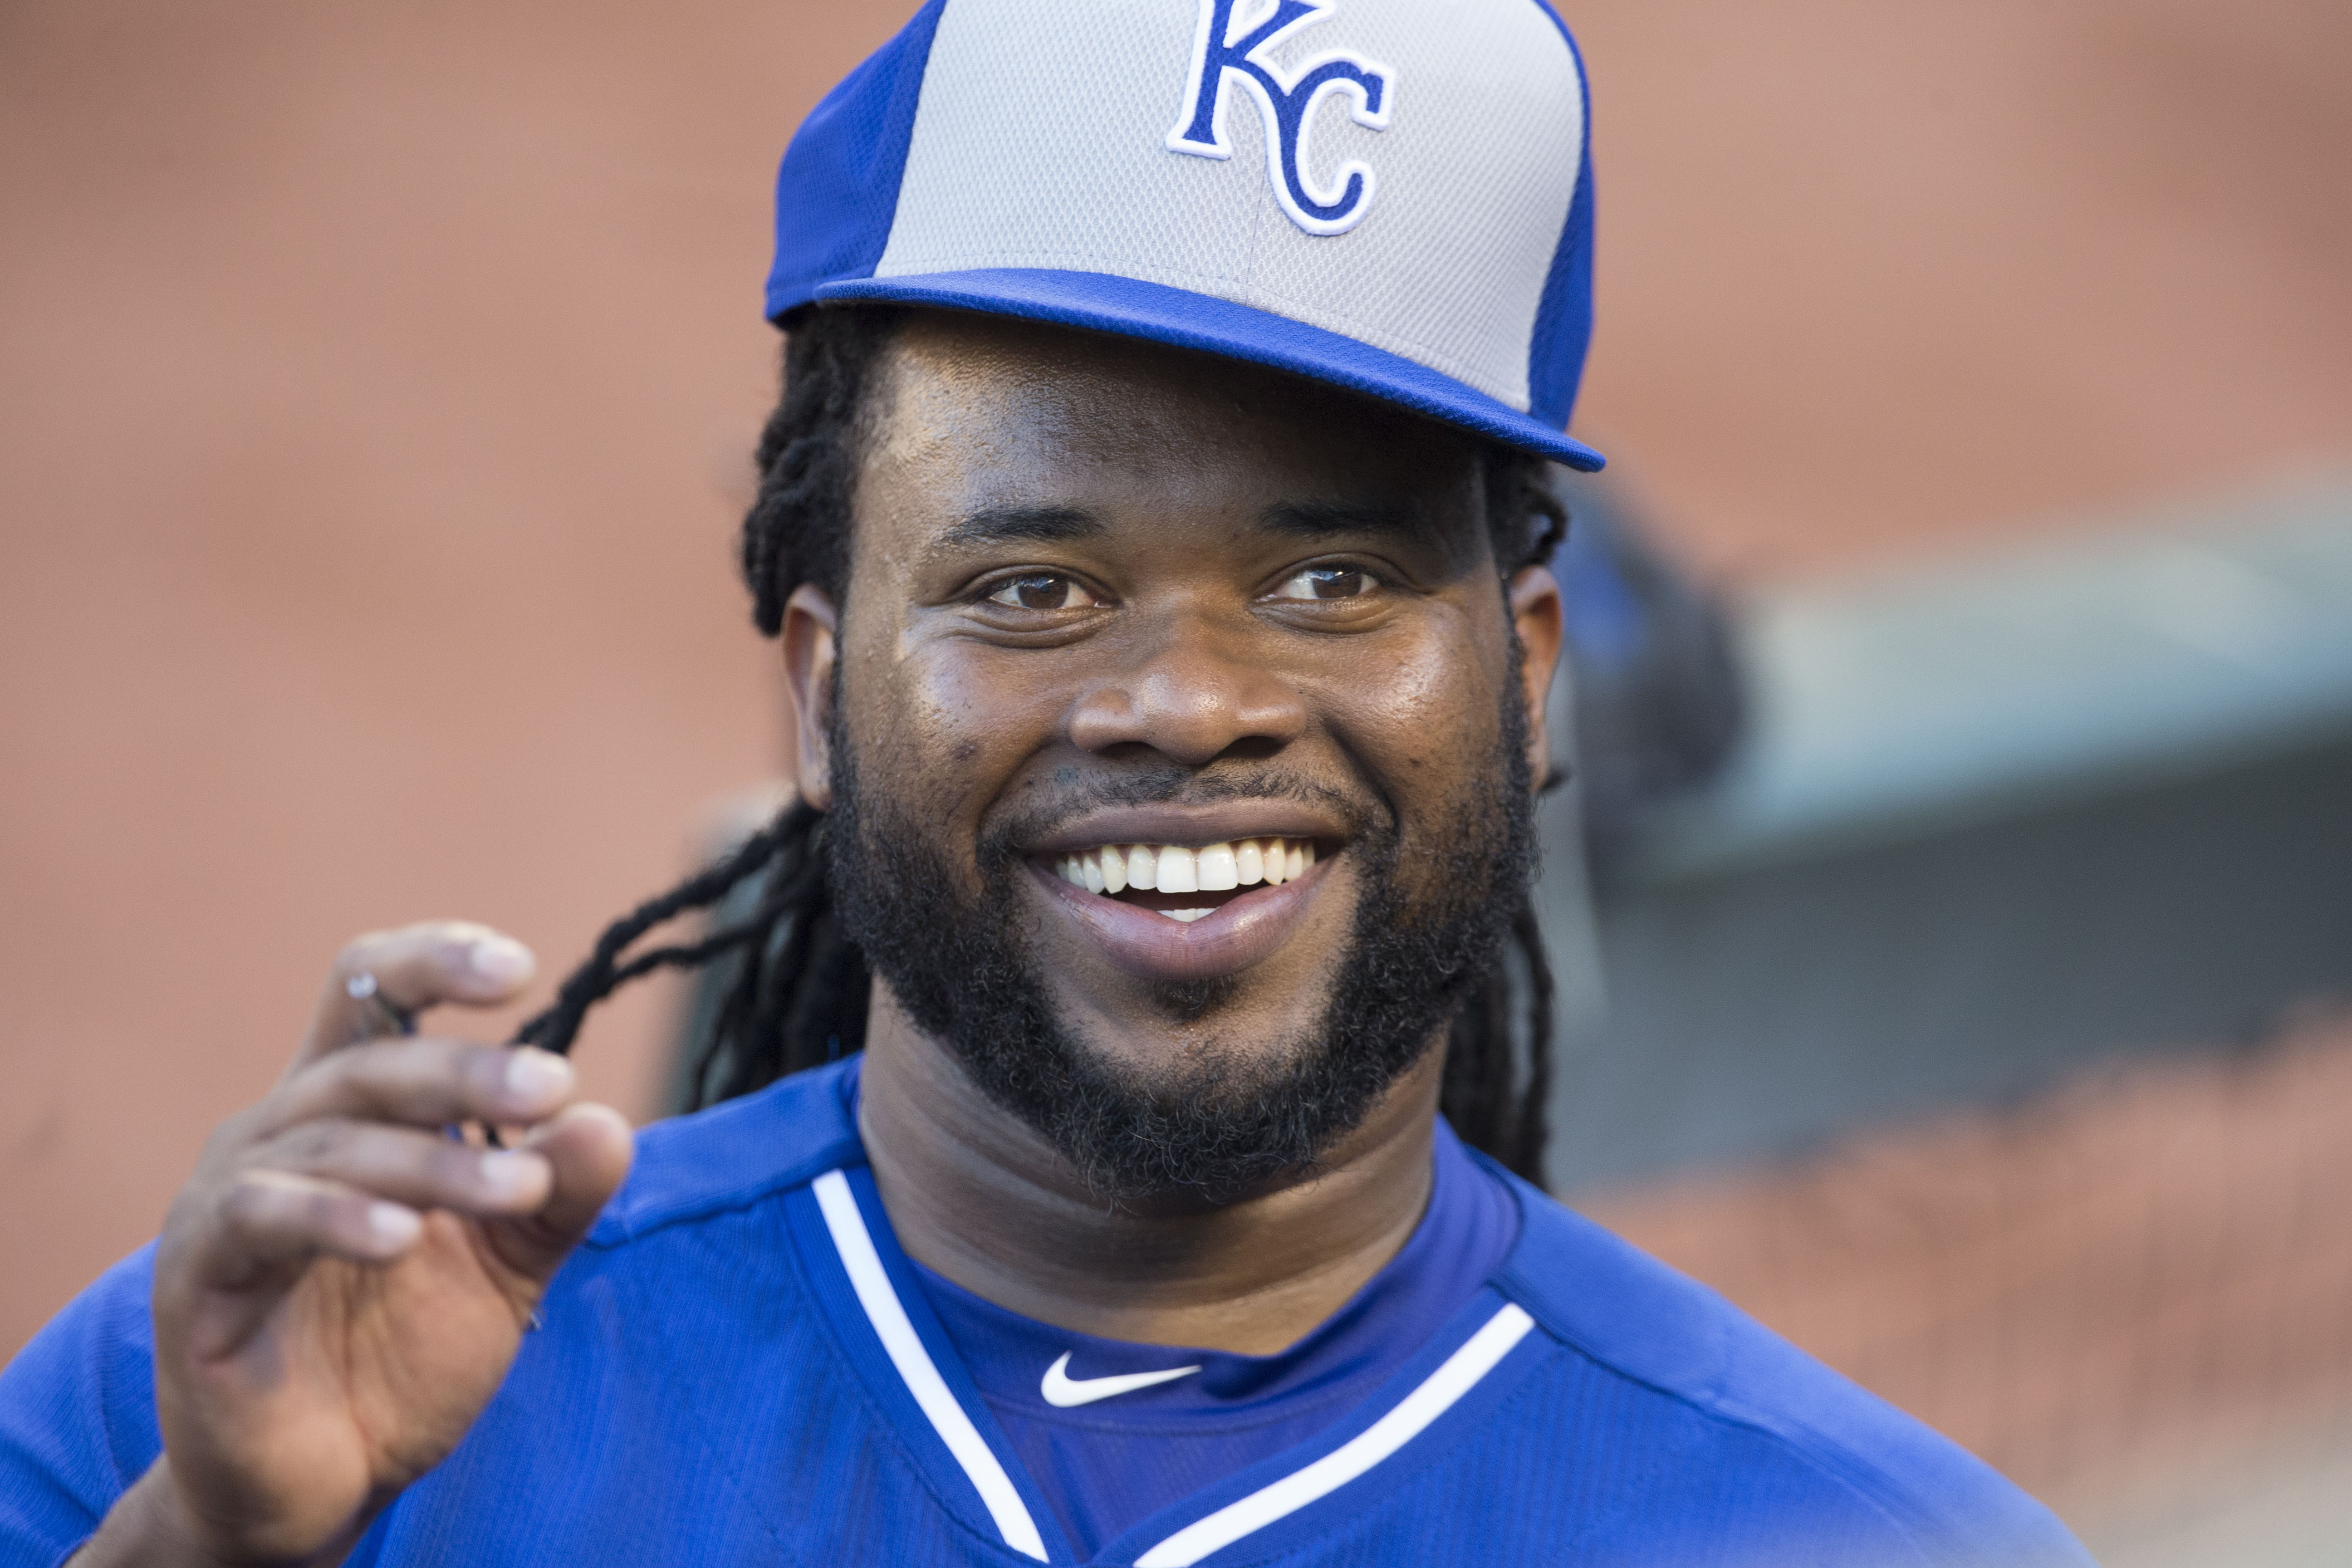 KC Royals' Pitcher Johnny Cueto (Flickr Photo by Keith Allison)